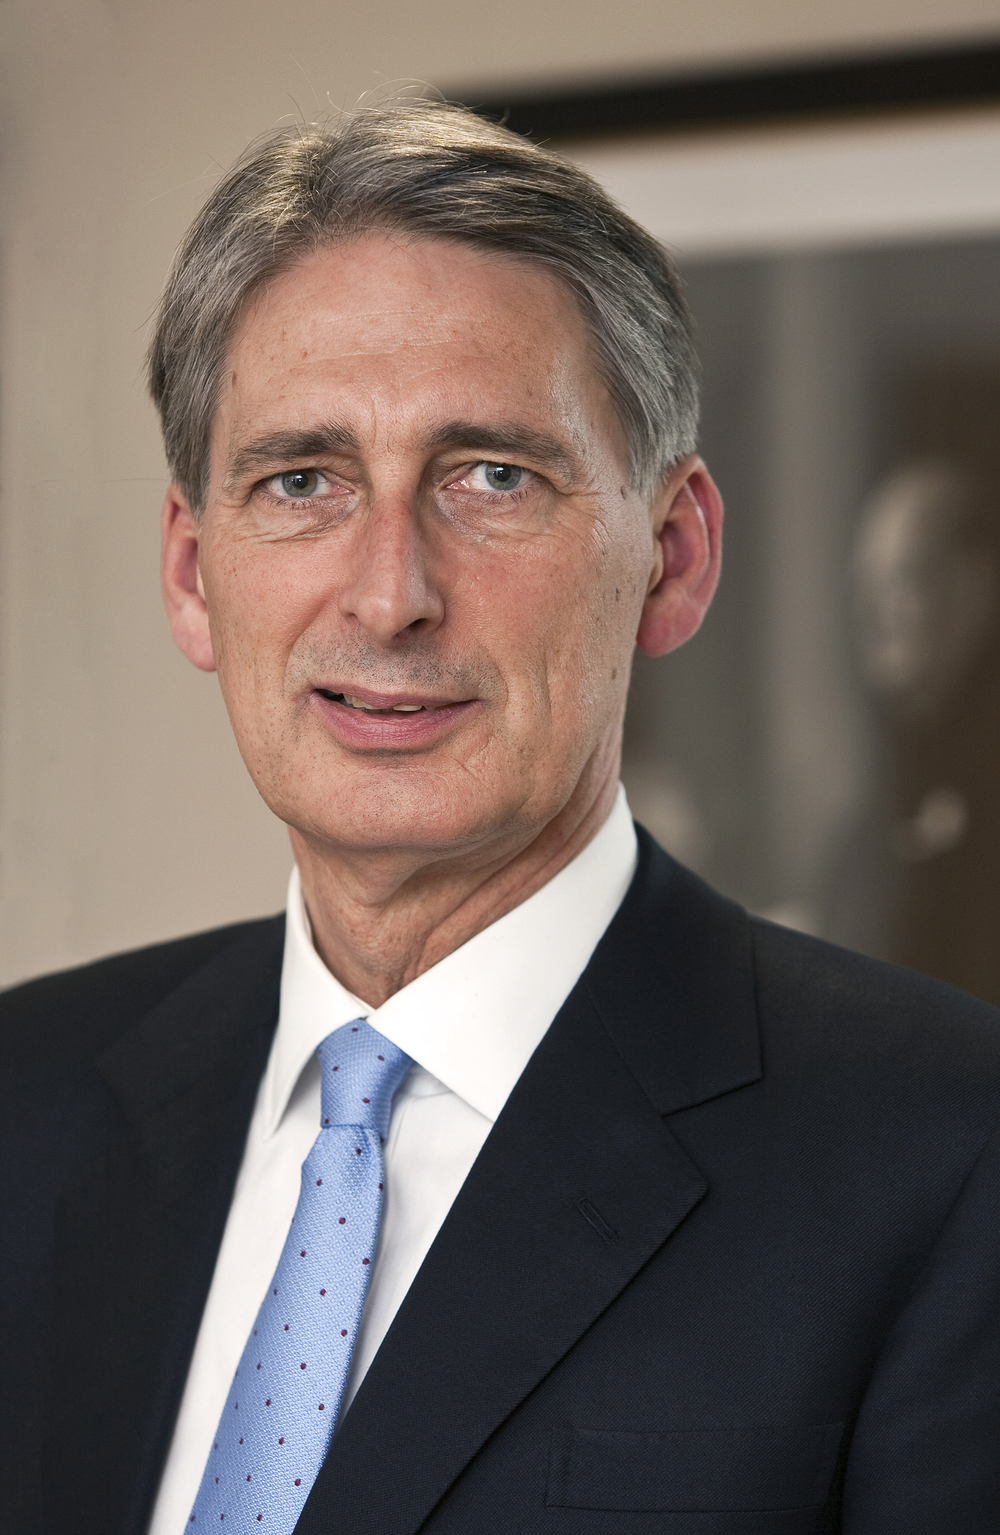 British Foreign Secretary Philip Hammond. Credit: Harland Quarrington, Ministry of Defence.